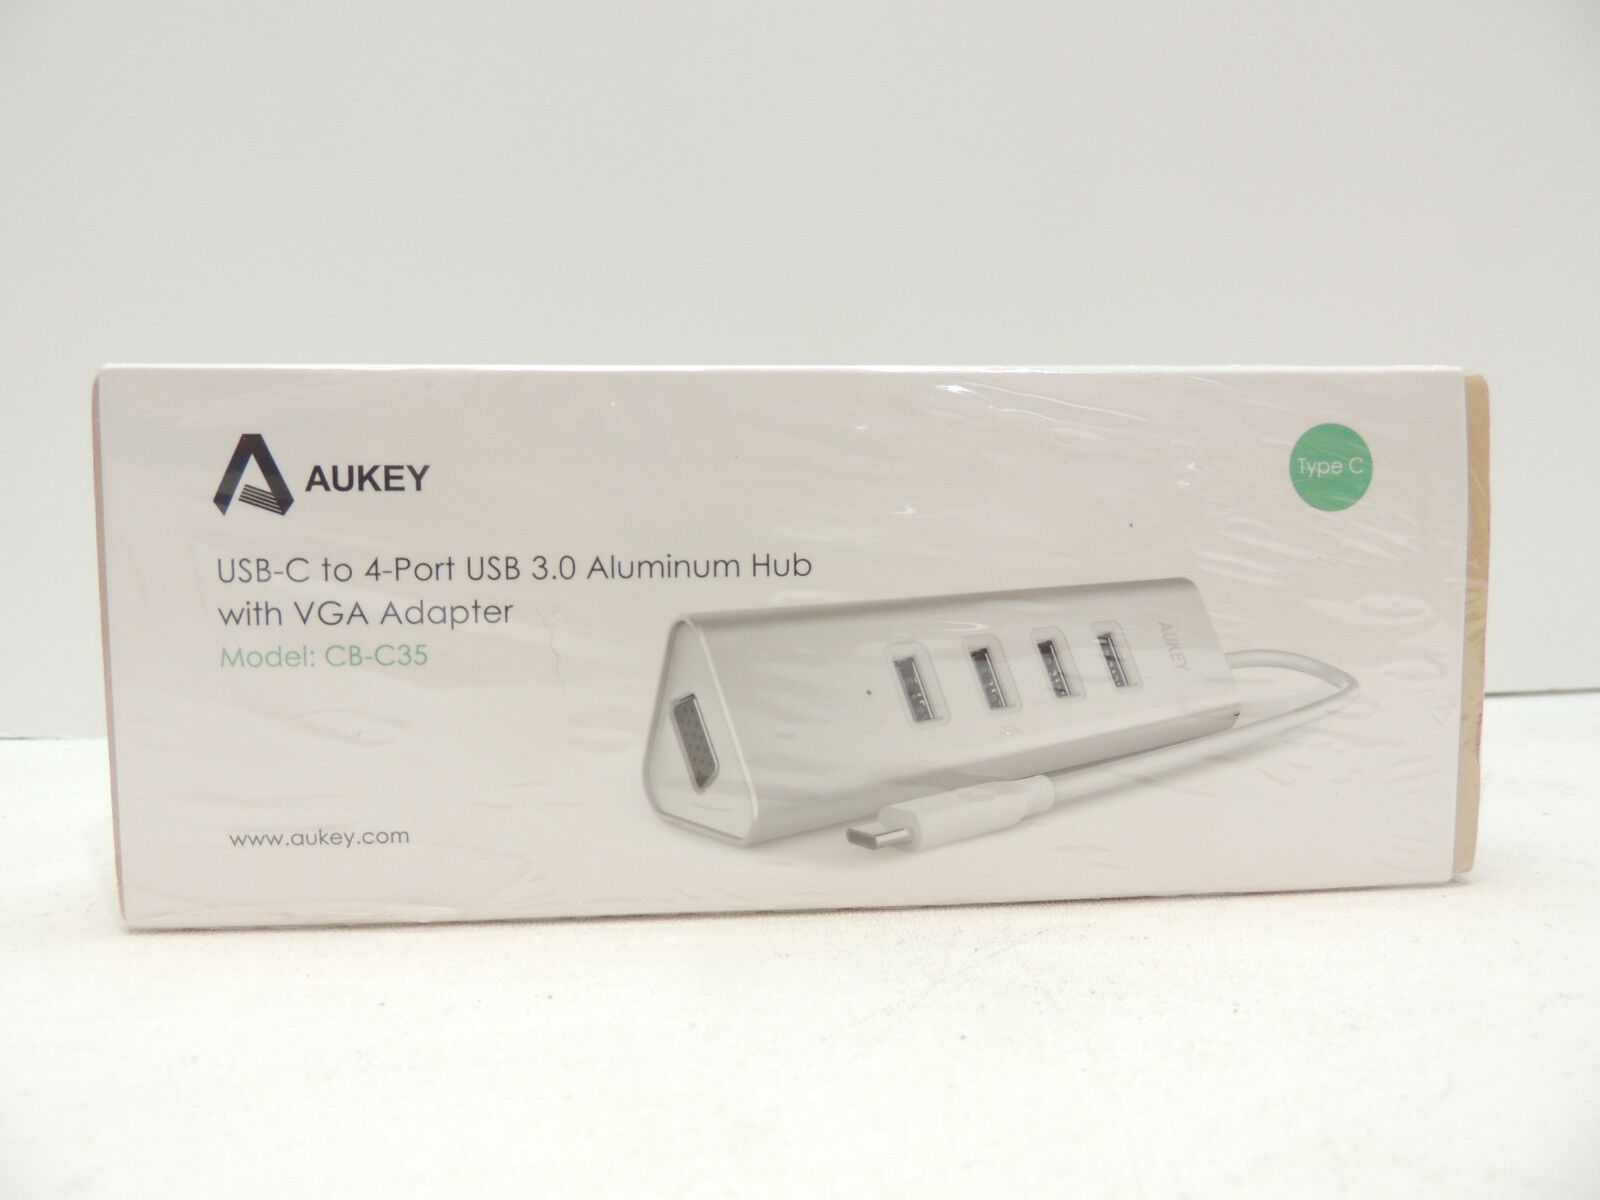 AUKEY 4-Port USB 3.0 USB-C Aluminum Hub with One VGA Port -